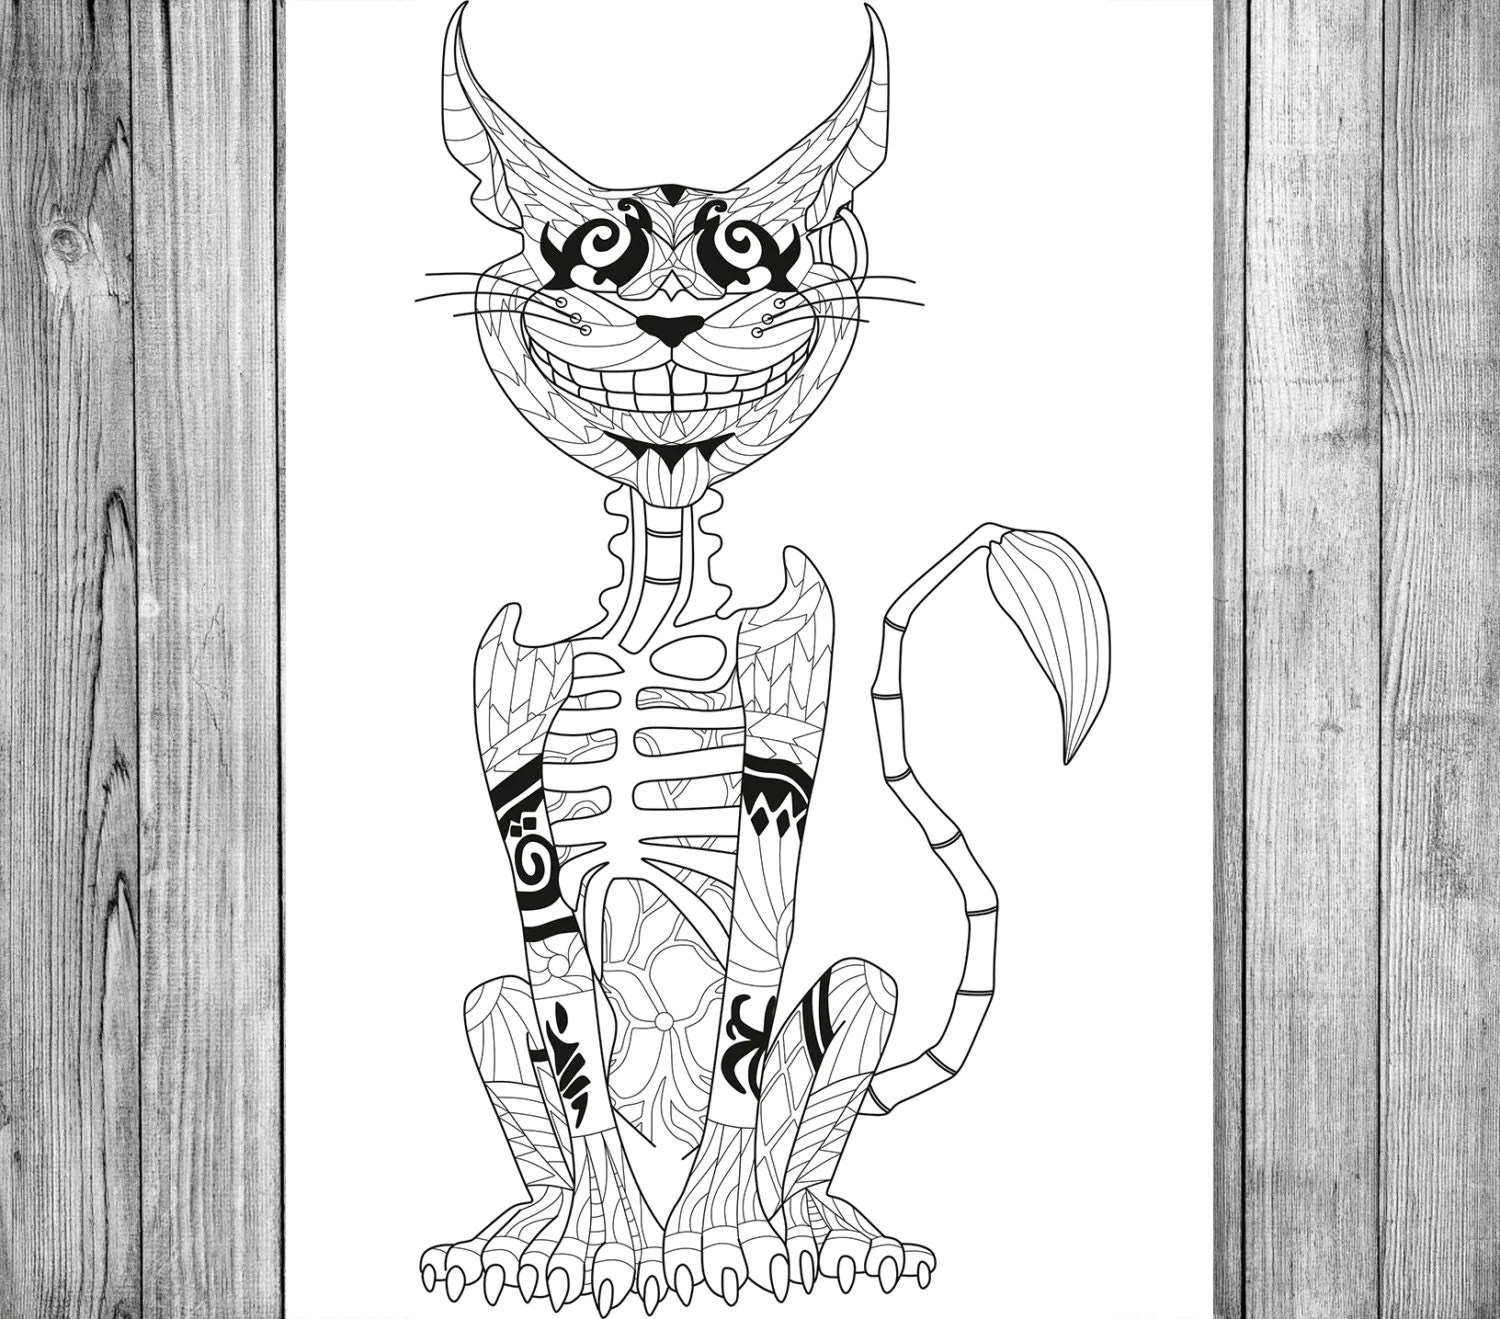 Cheshire Cat Coloring Page Adult Coloring Book Adult Coloring